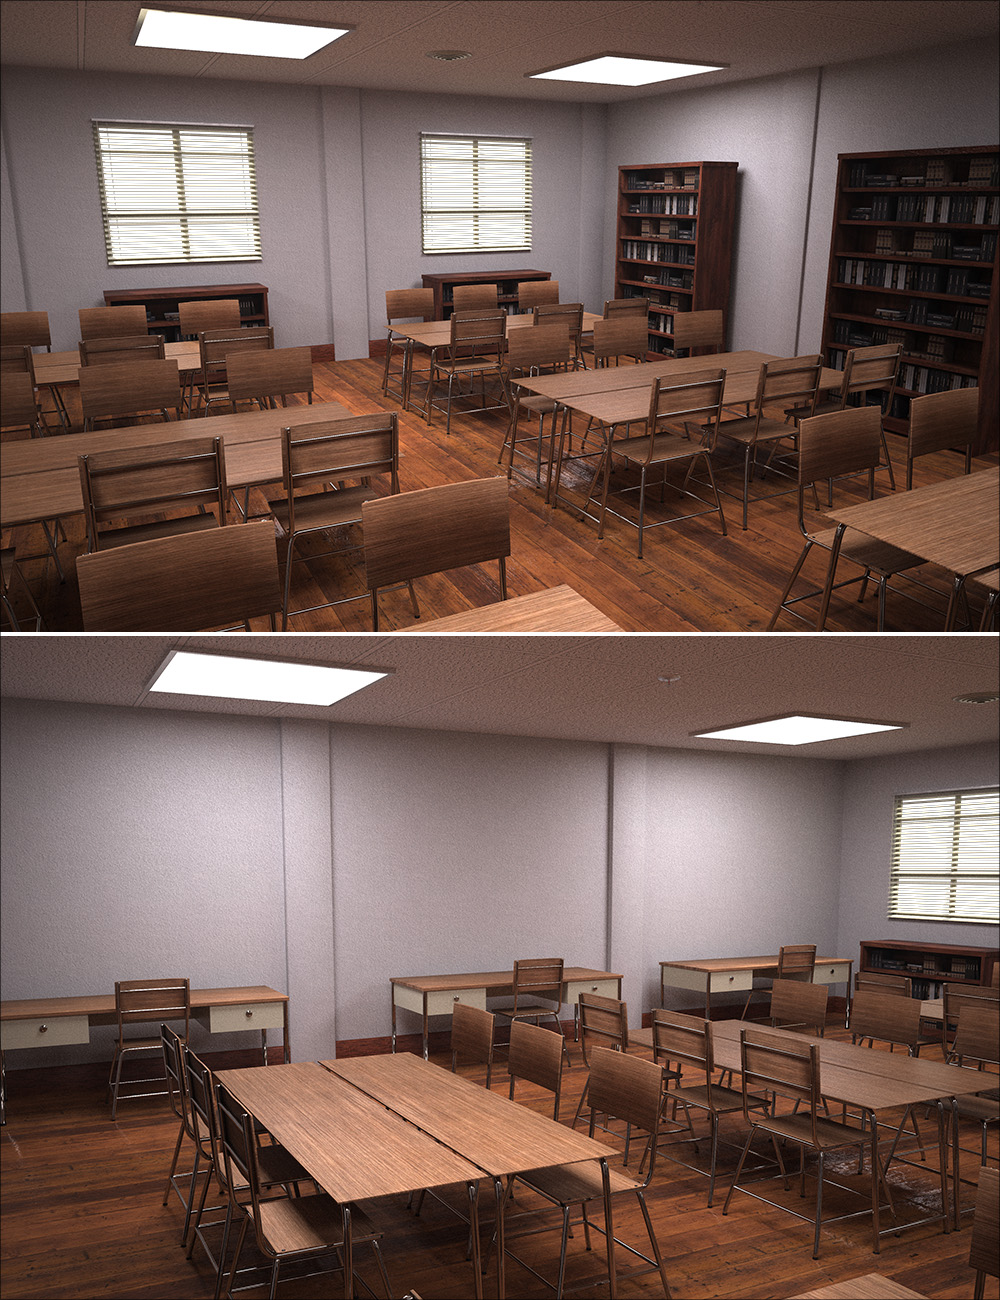 Library Study Room by: , 3D Models by Daz 3D